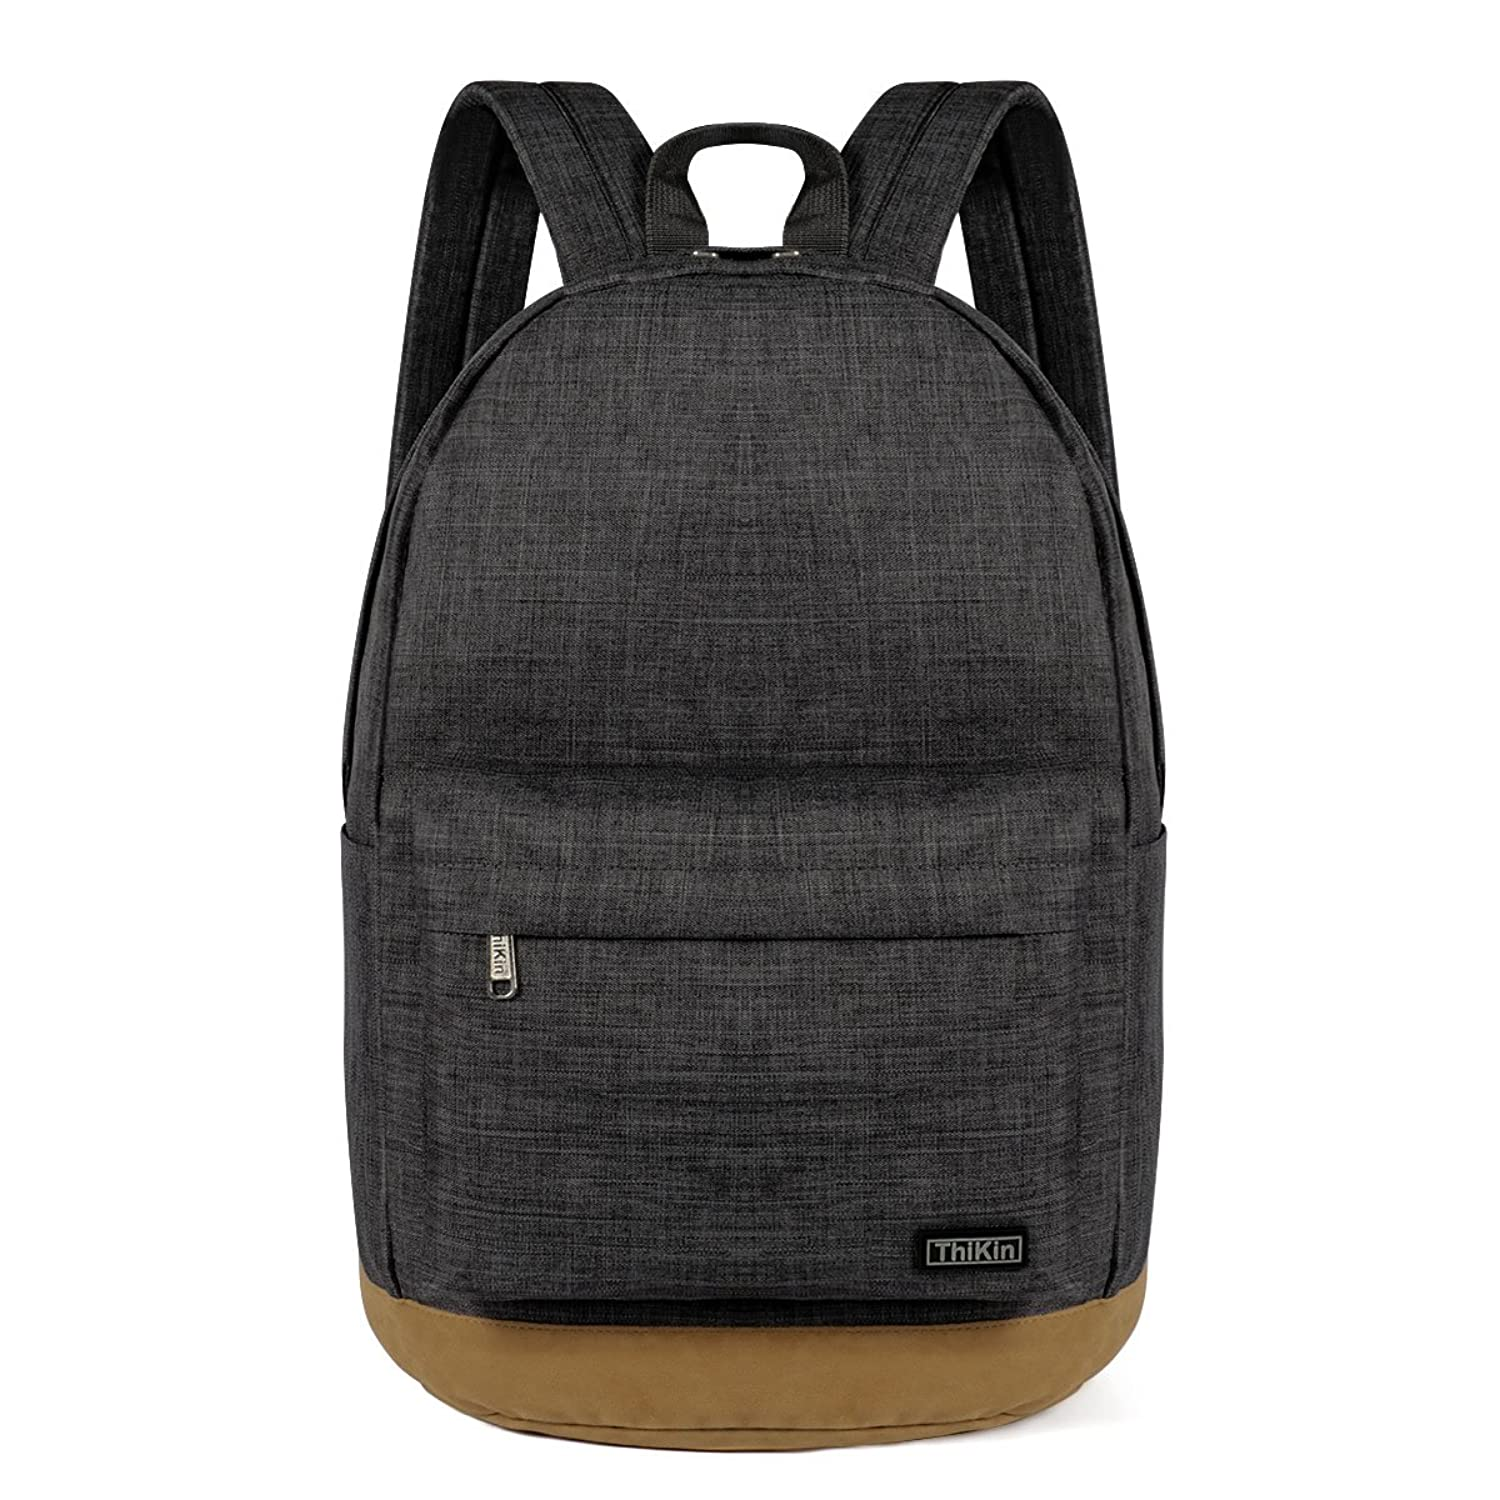 thikin uni classic travel laptop backpacks college